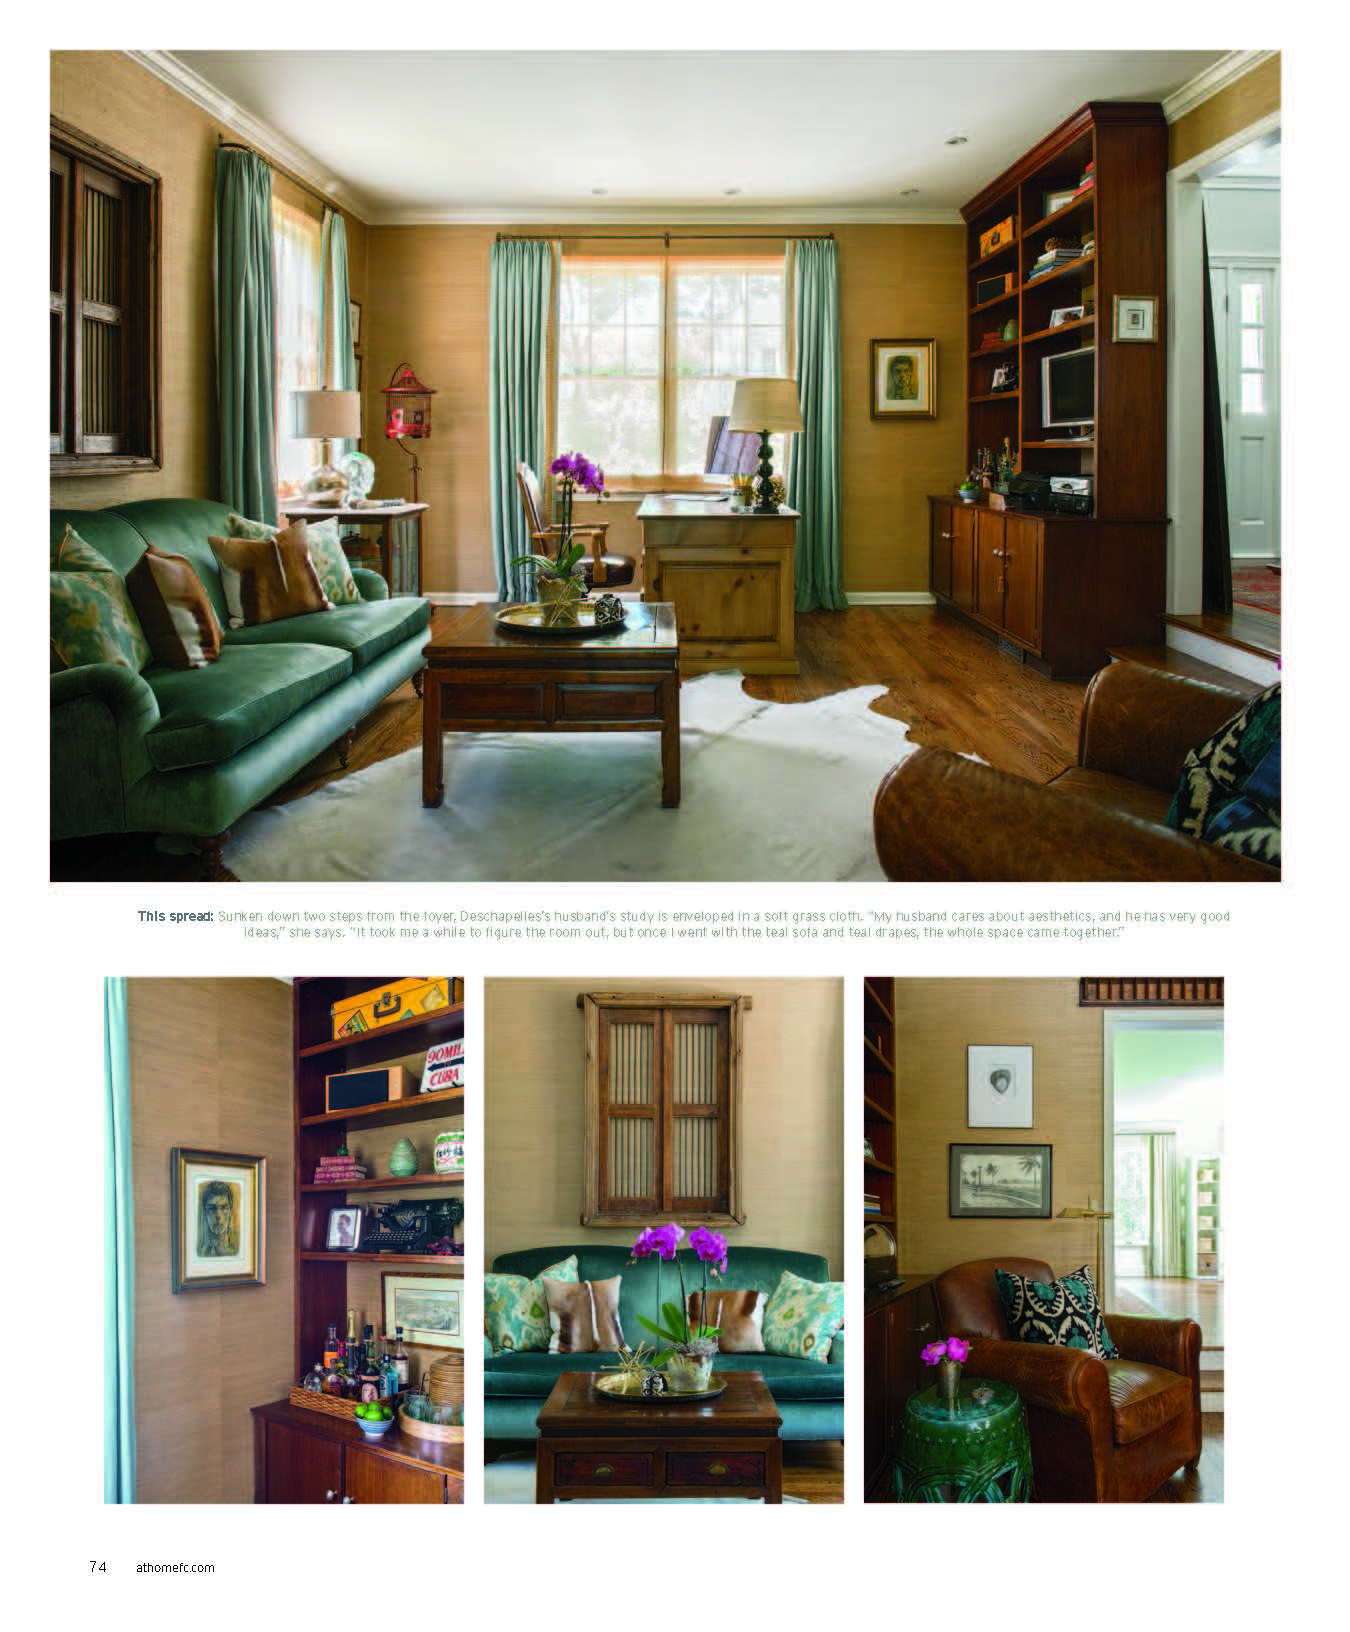 At Home_Page_03.jpg